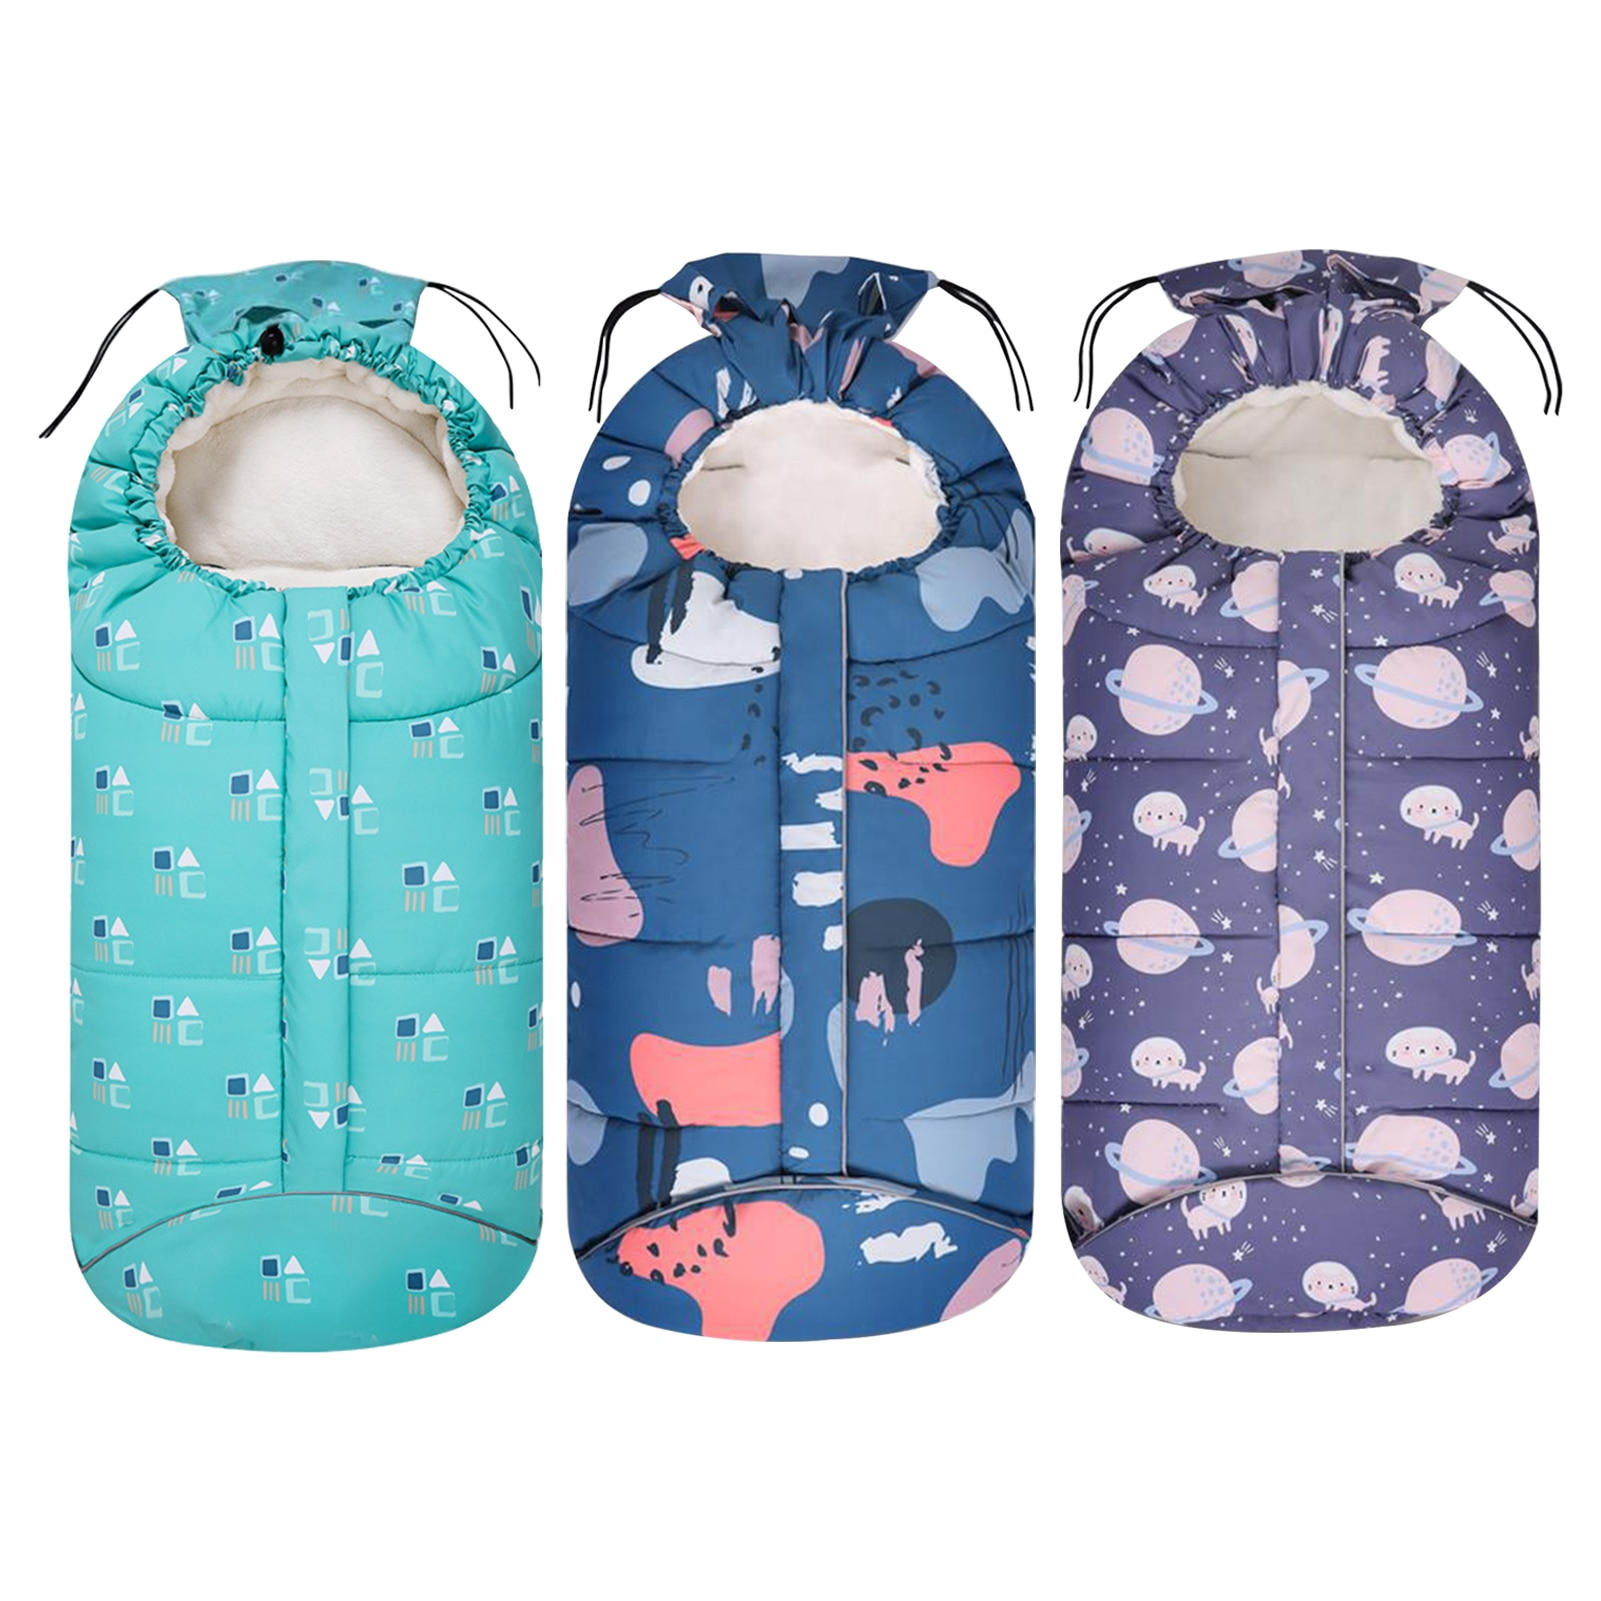 Winter Baby Sleeping Bags Baby Sleepsacks Soft Warm Envelope For Newborn Wearable Stroller Blanket With Footmuff For Carriage